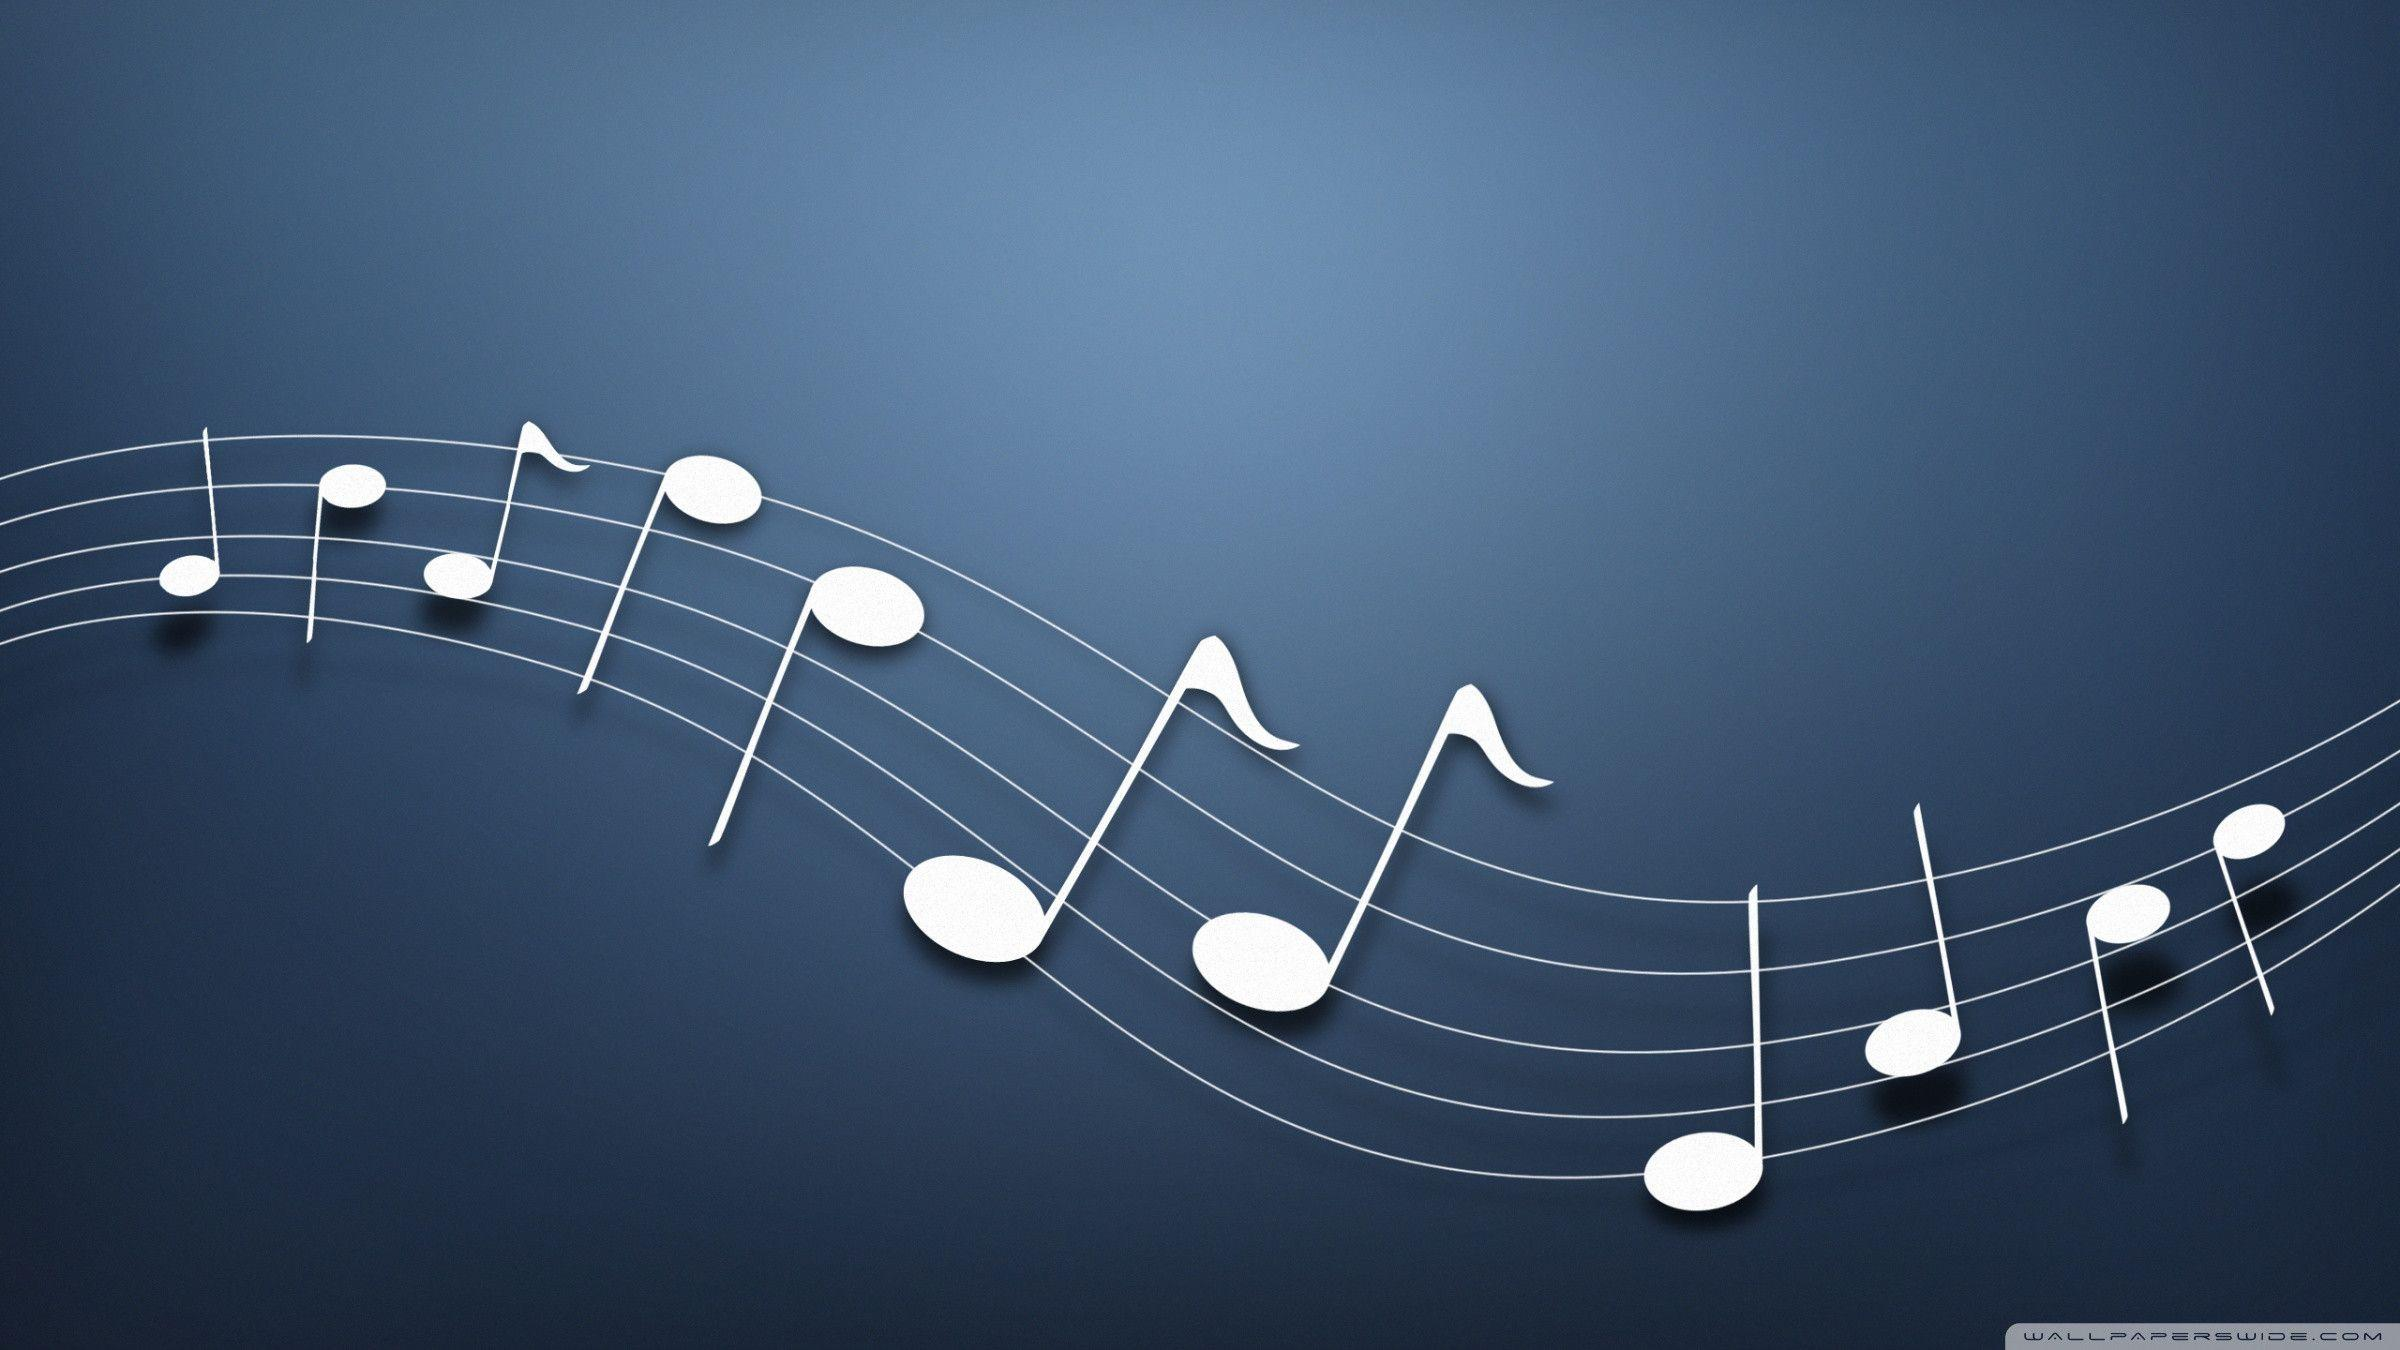 Music Note Backgrounds Hd Widescreen 10 HD Wallpapers